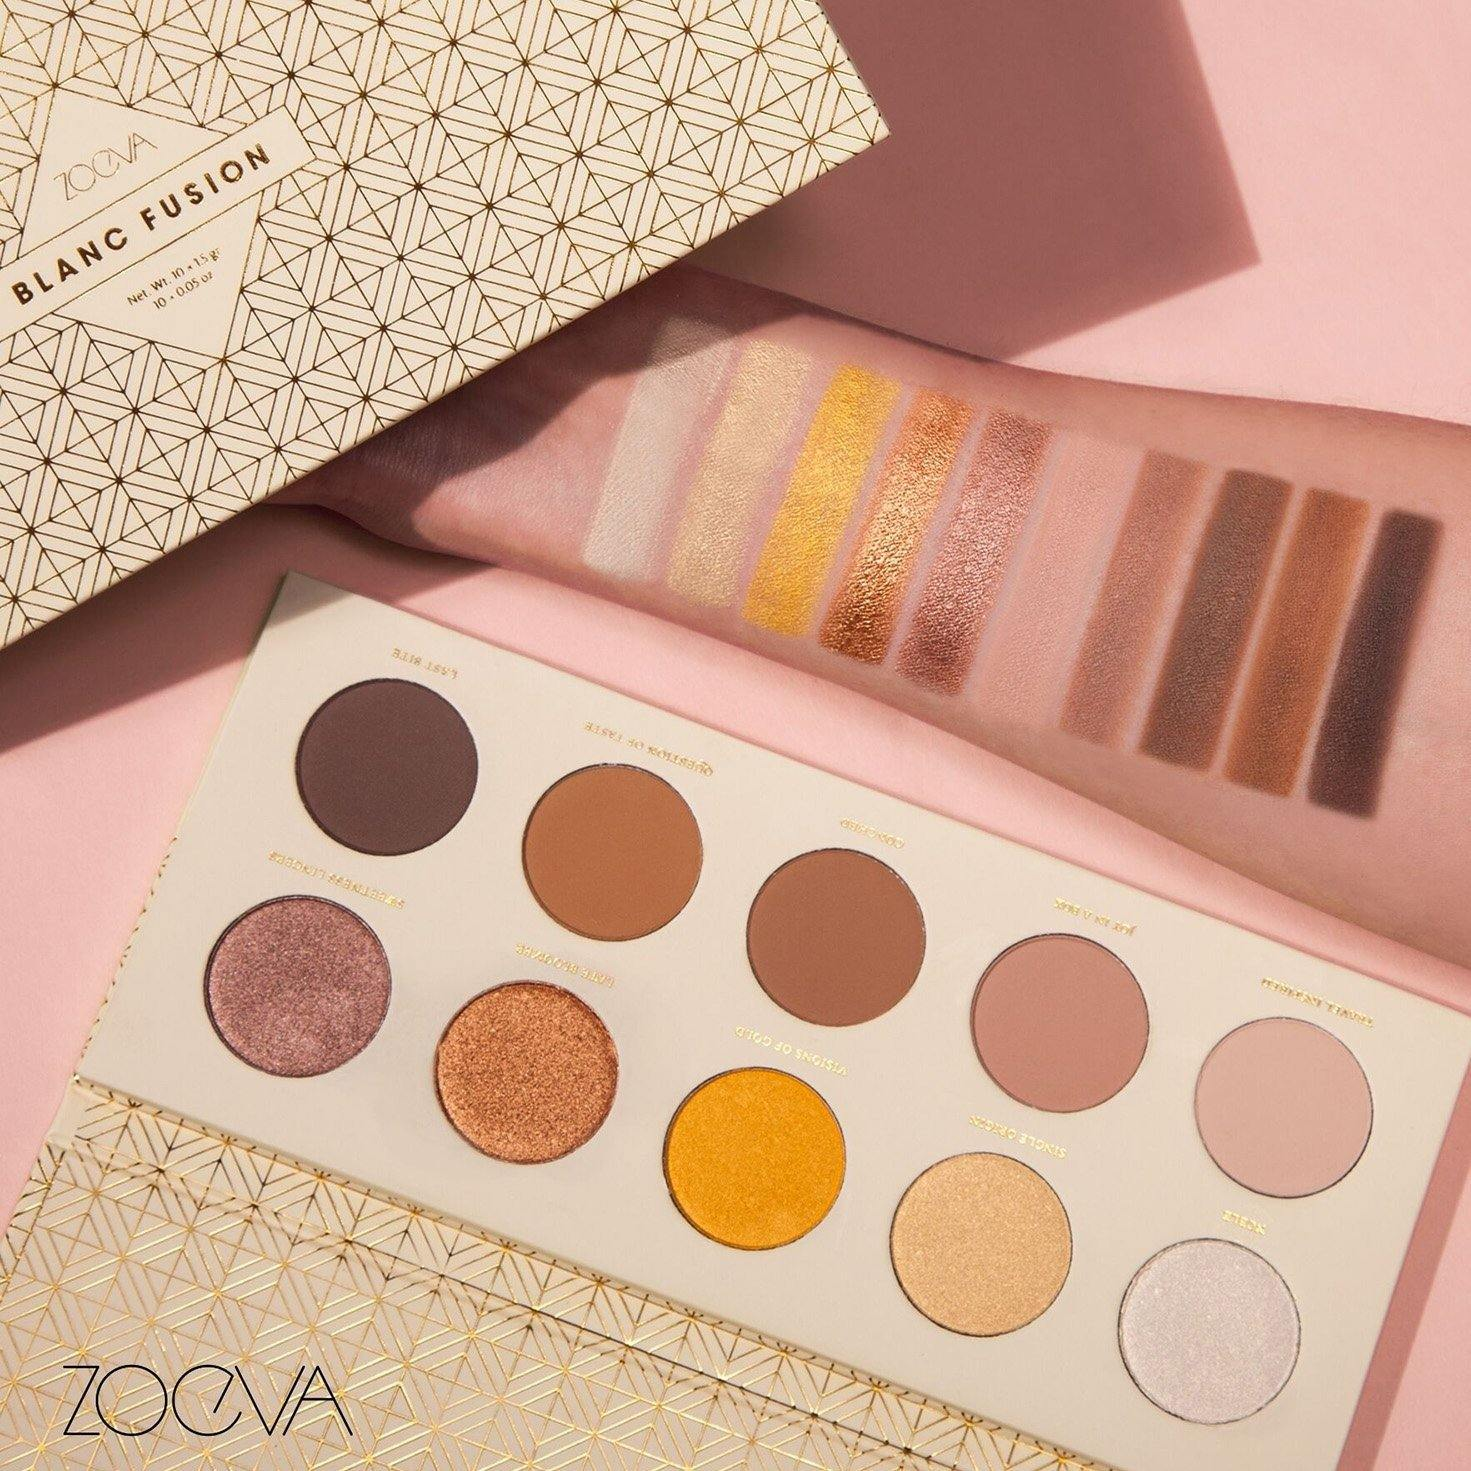 ZOEVA - BLANC FUSION EYESHADOW PALETTE - Lemon and Twig